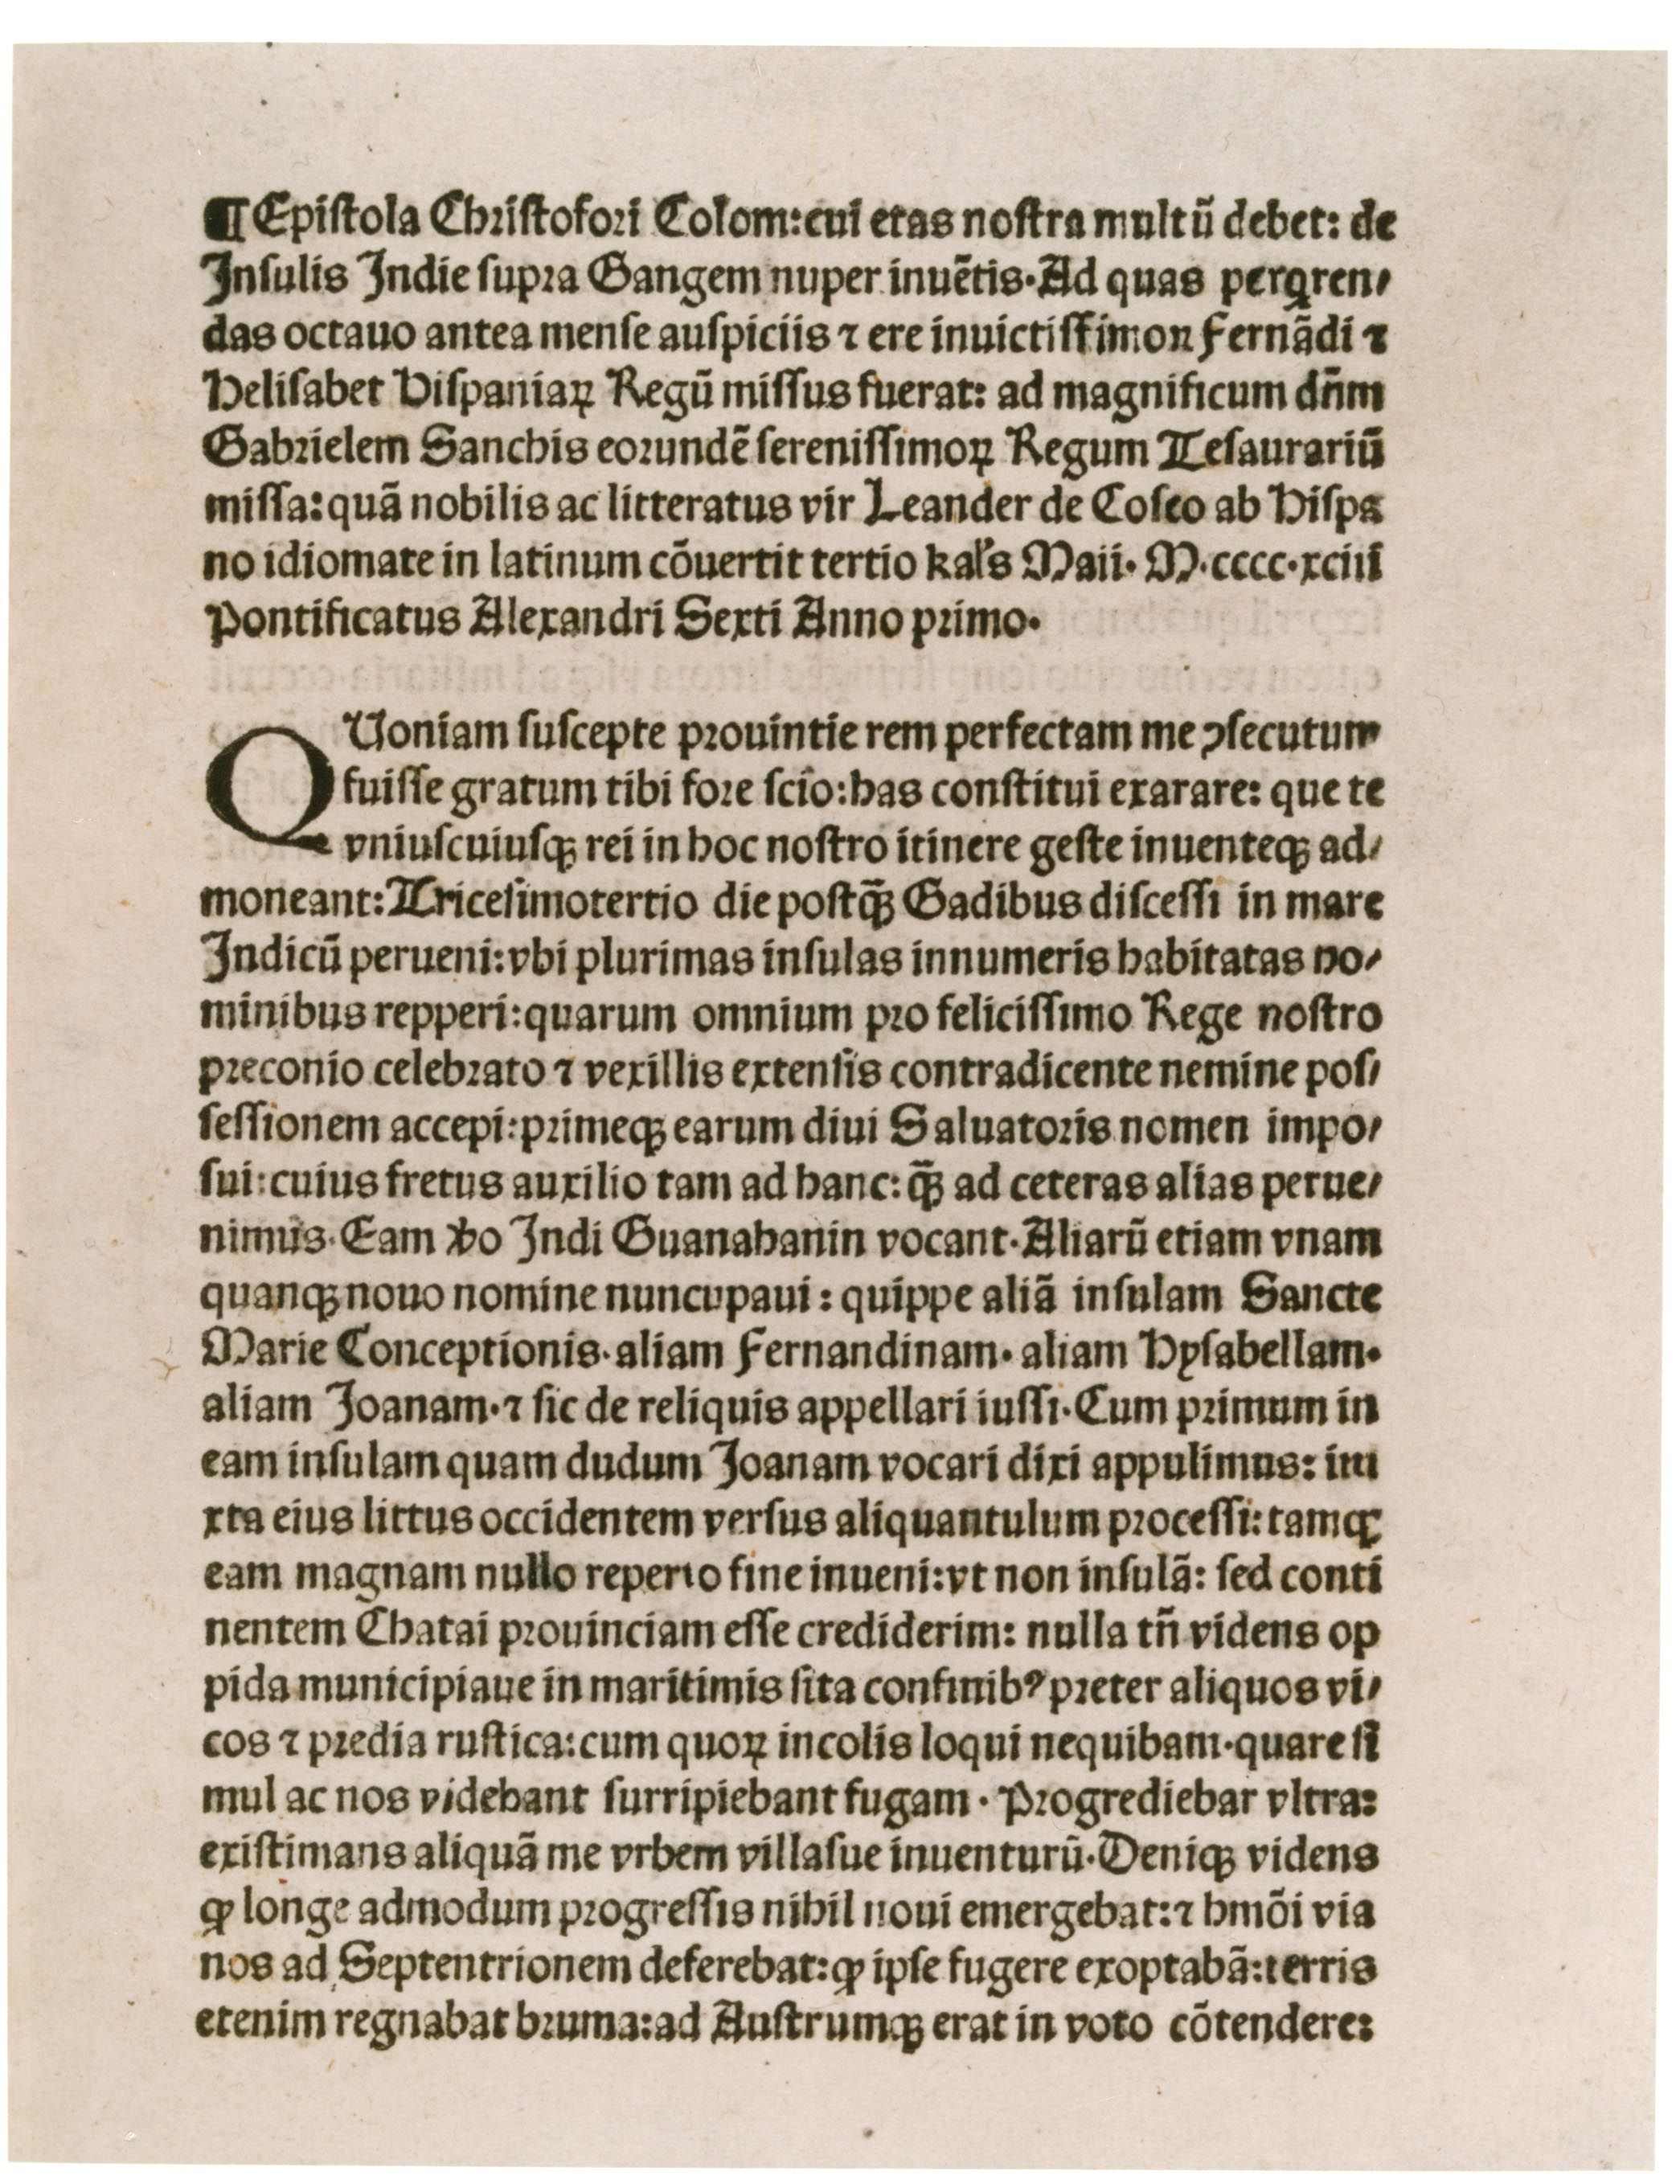 christopher columbus u2019s letter to ferdinand and isabella